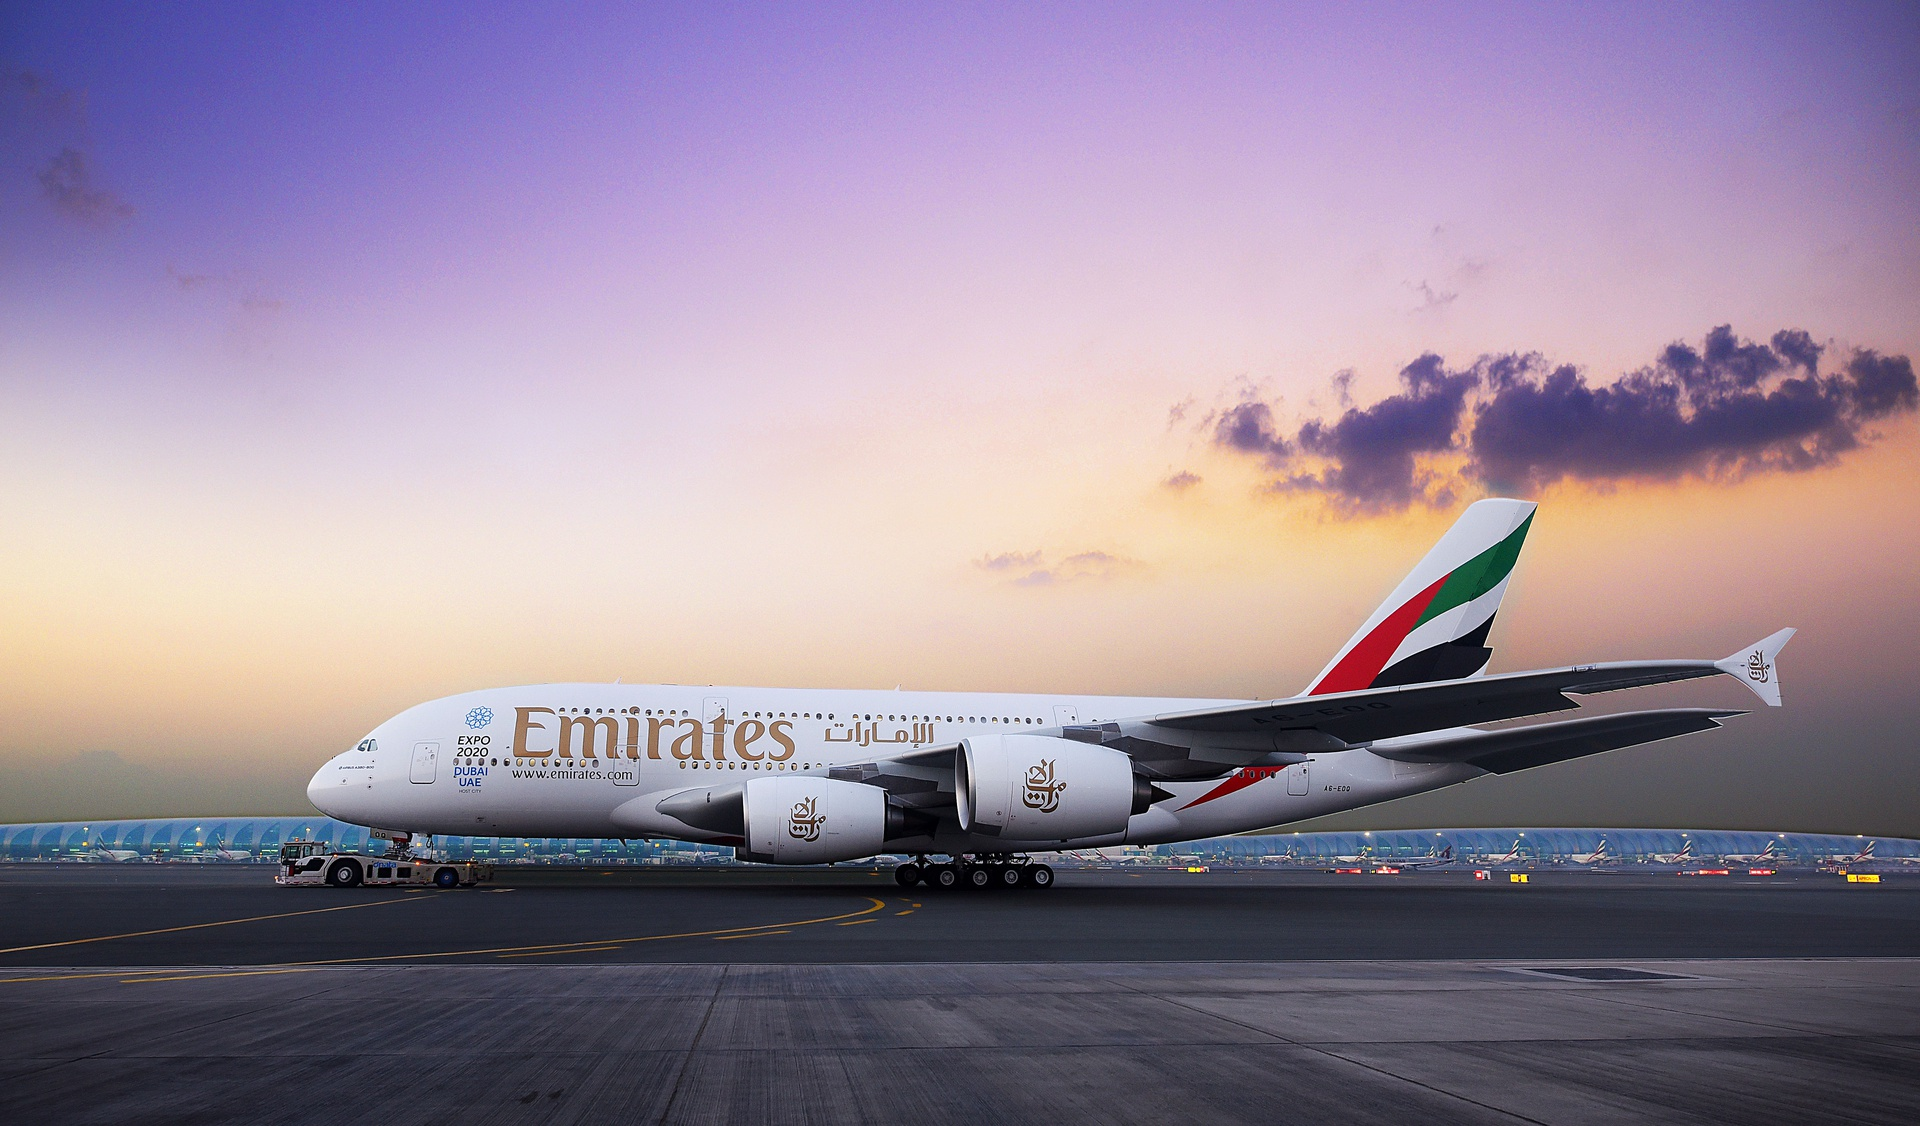 As part of its fleet renewal strategy, Emirates will take delivery of 36 new aircraft in 2016, including 20 A380s.